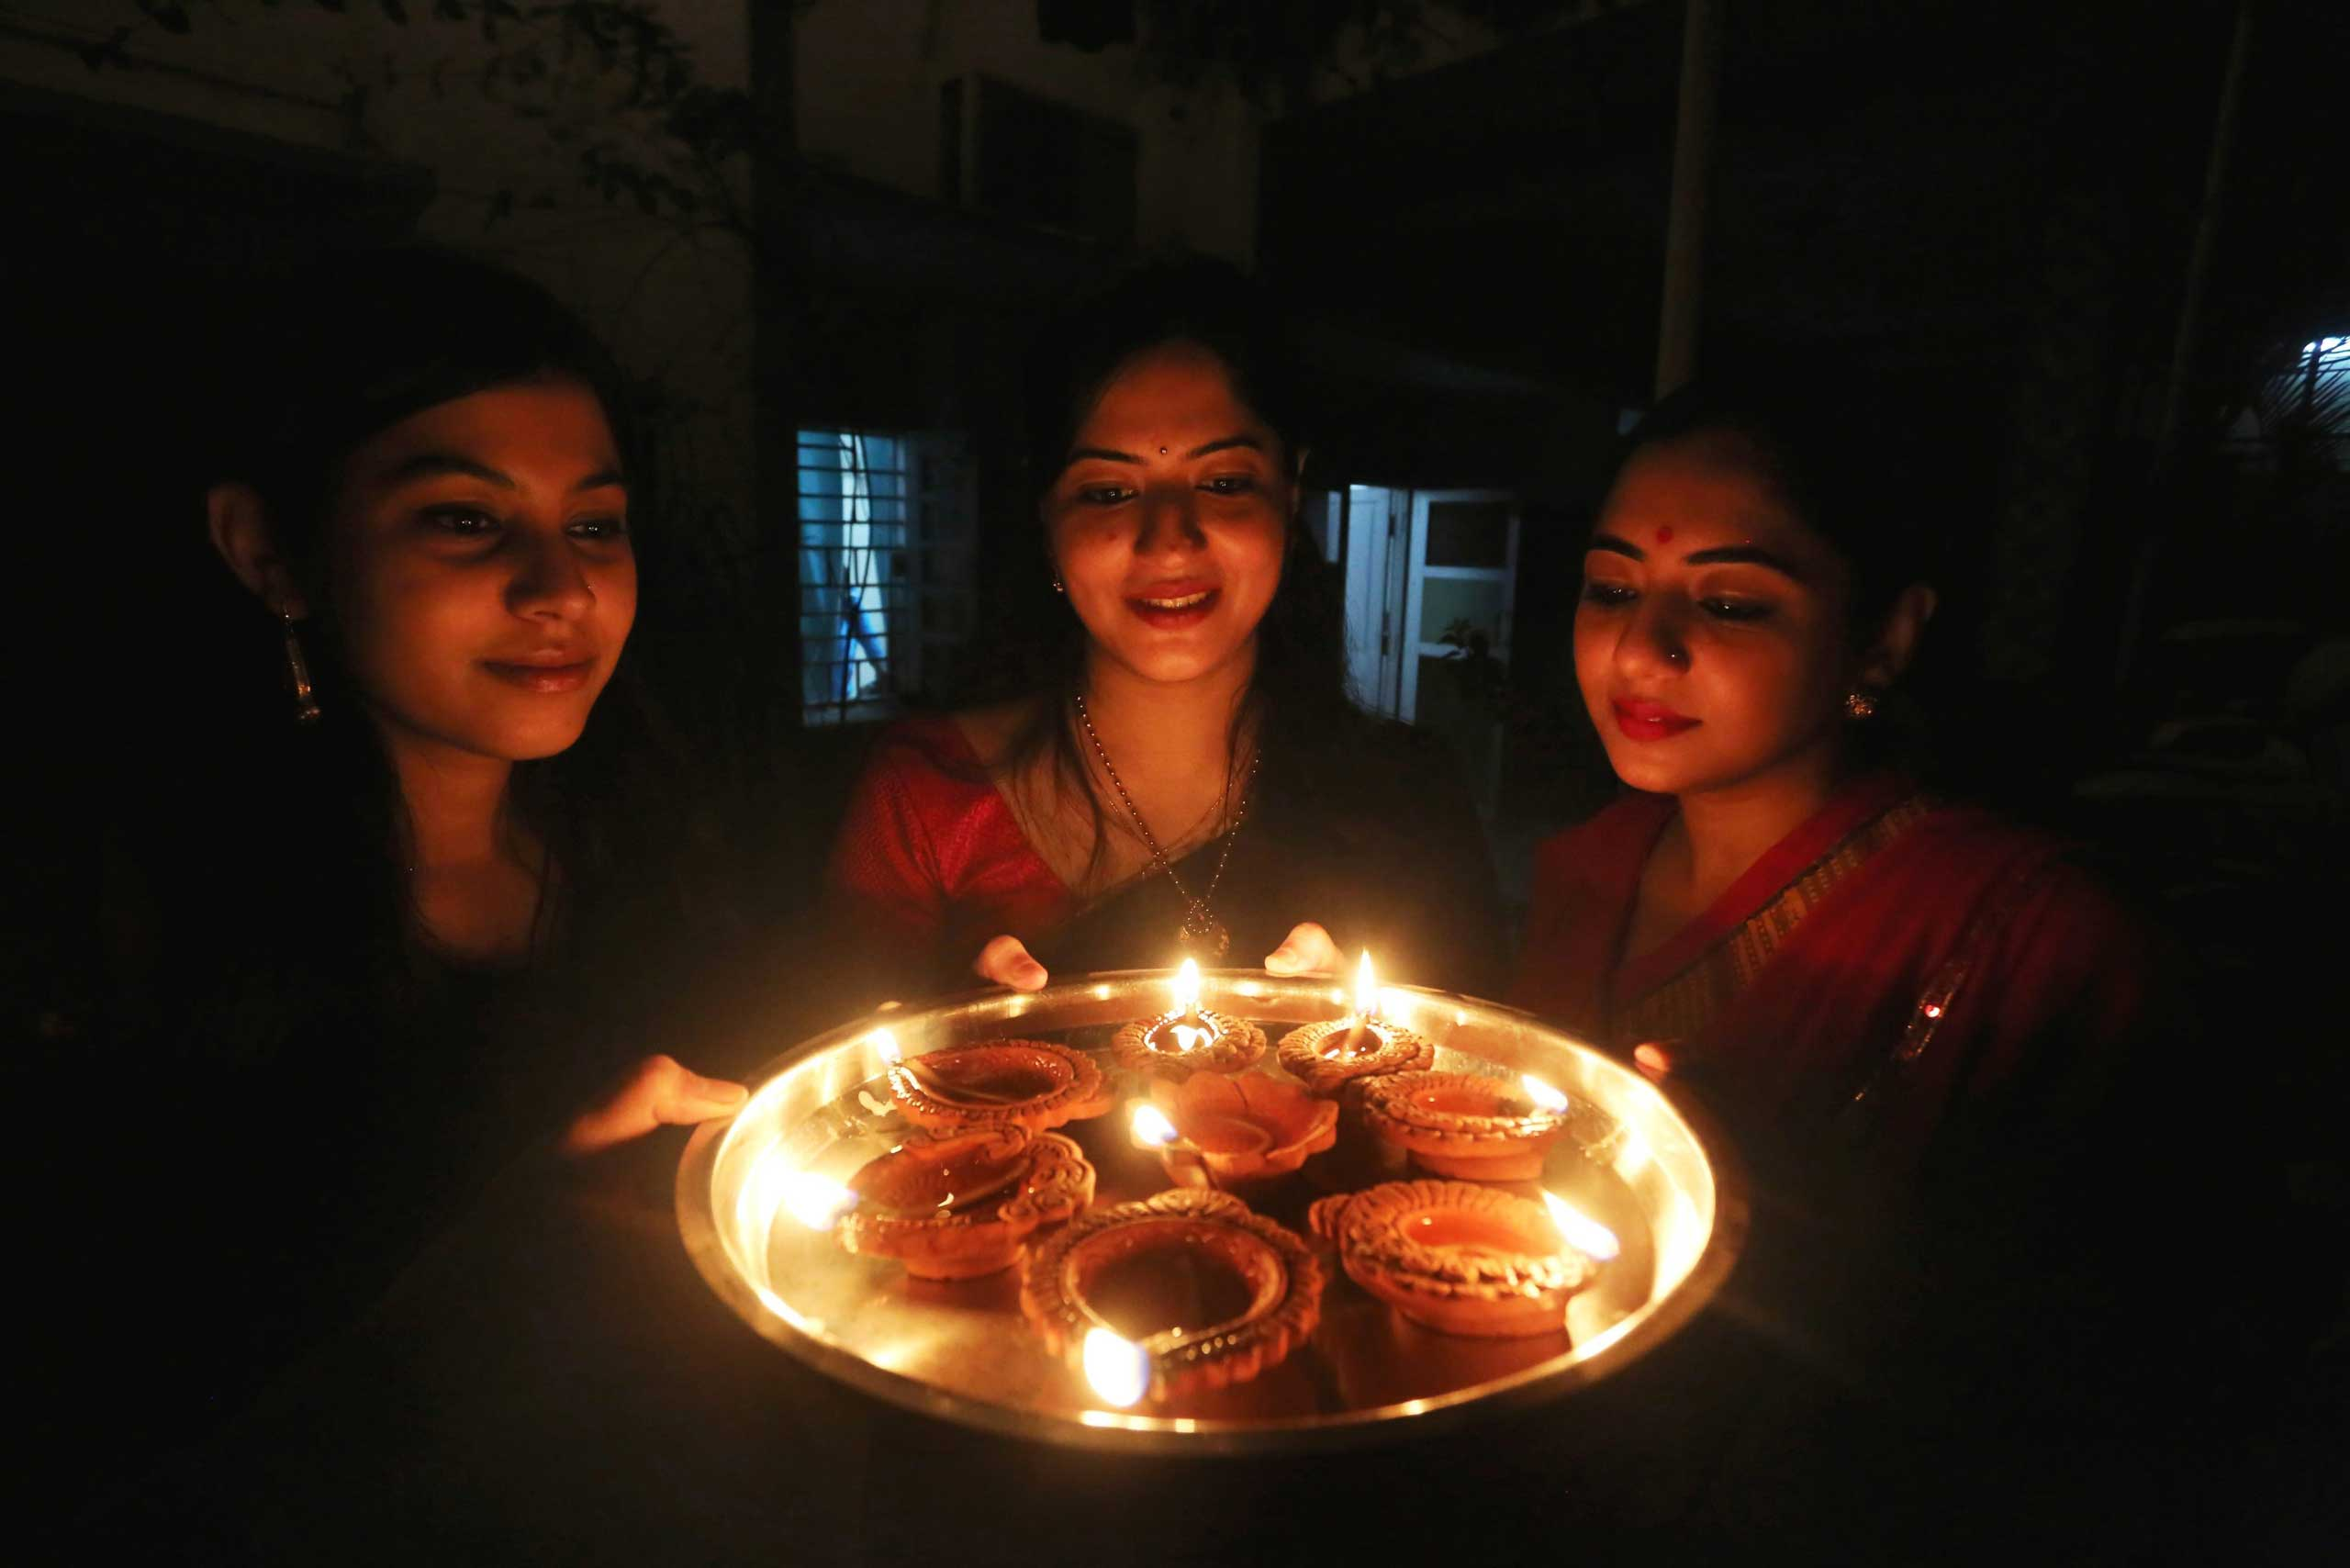 Indian women light lamps on the eve of Diwali festival to mark the event in Bhopal, India, on Nov. 10,  2015.